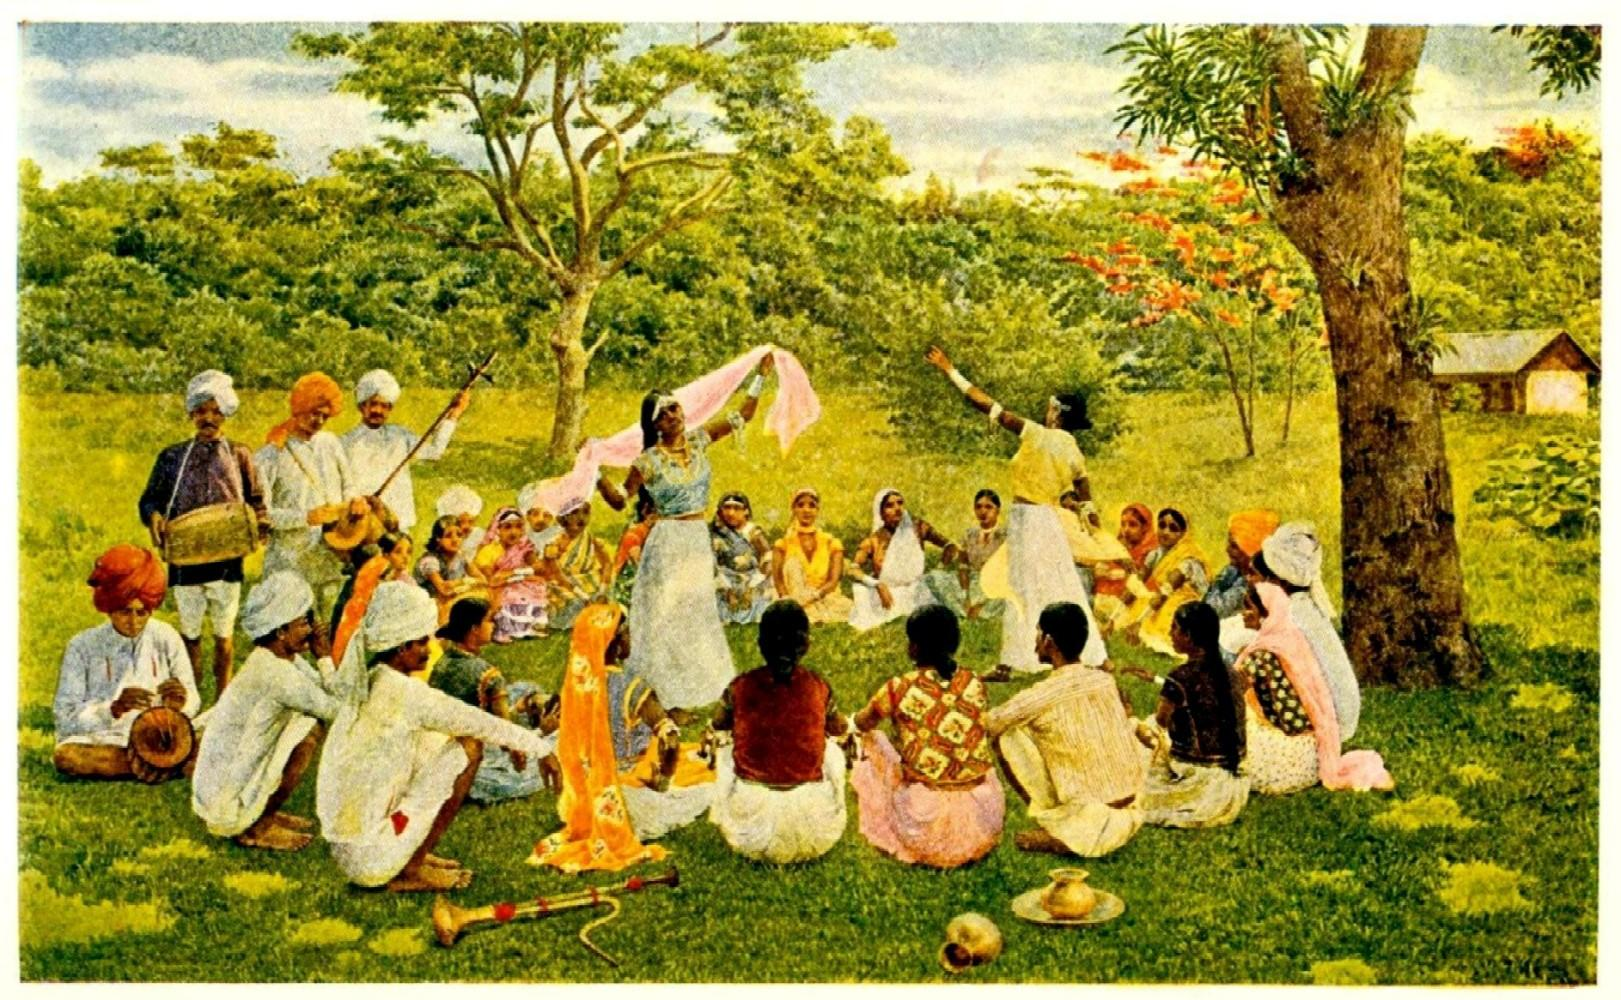 East Indian Coolies in Trinidad Project Gutenberg